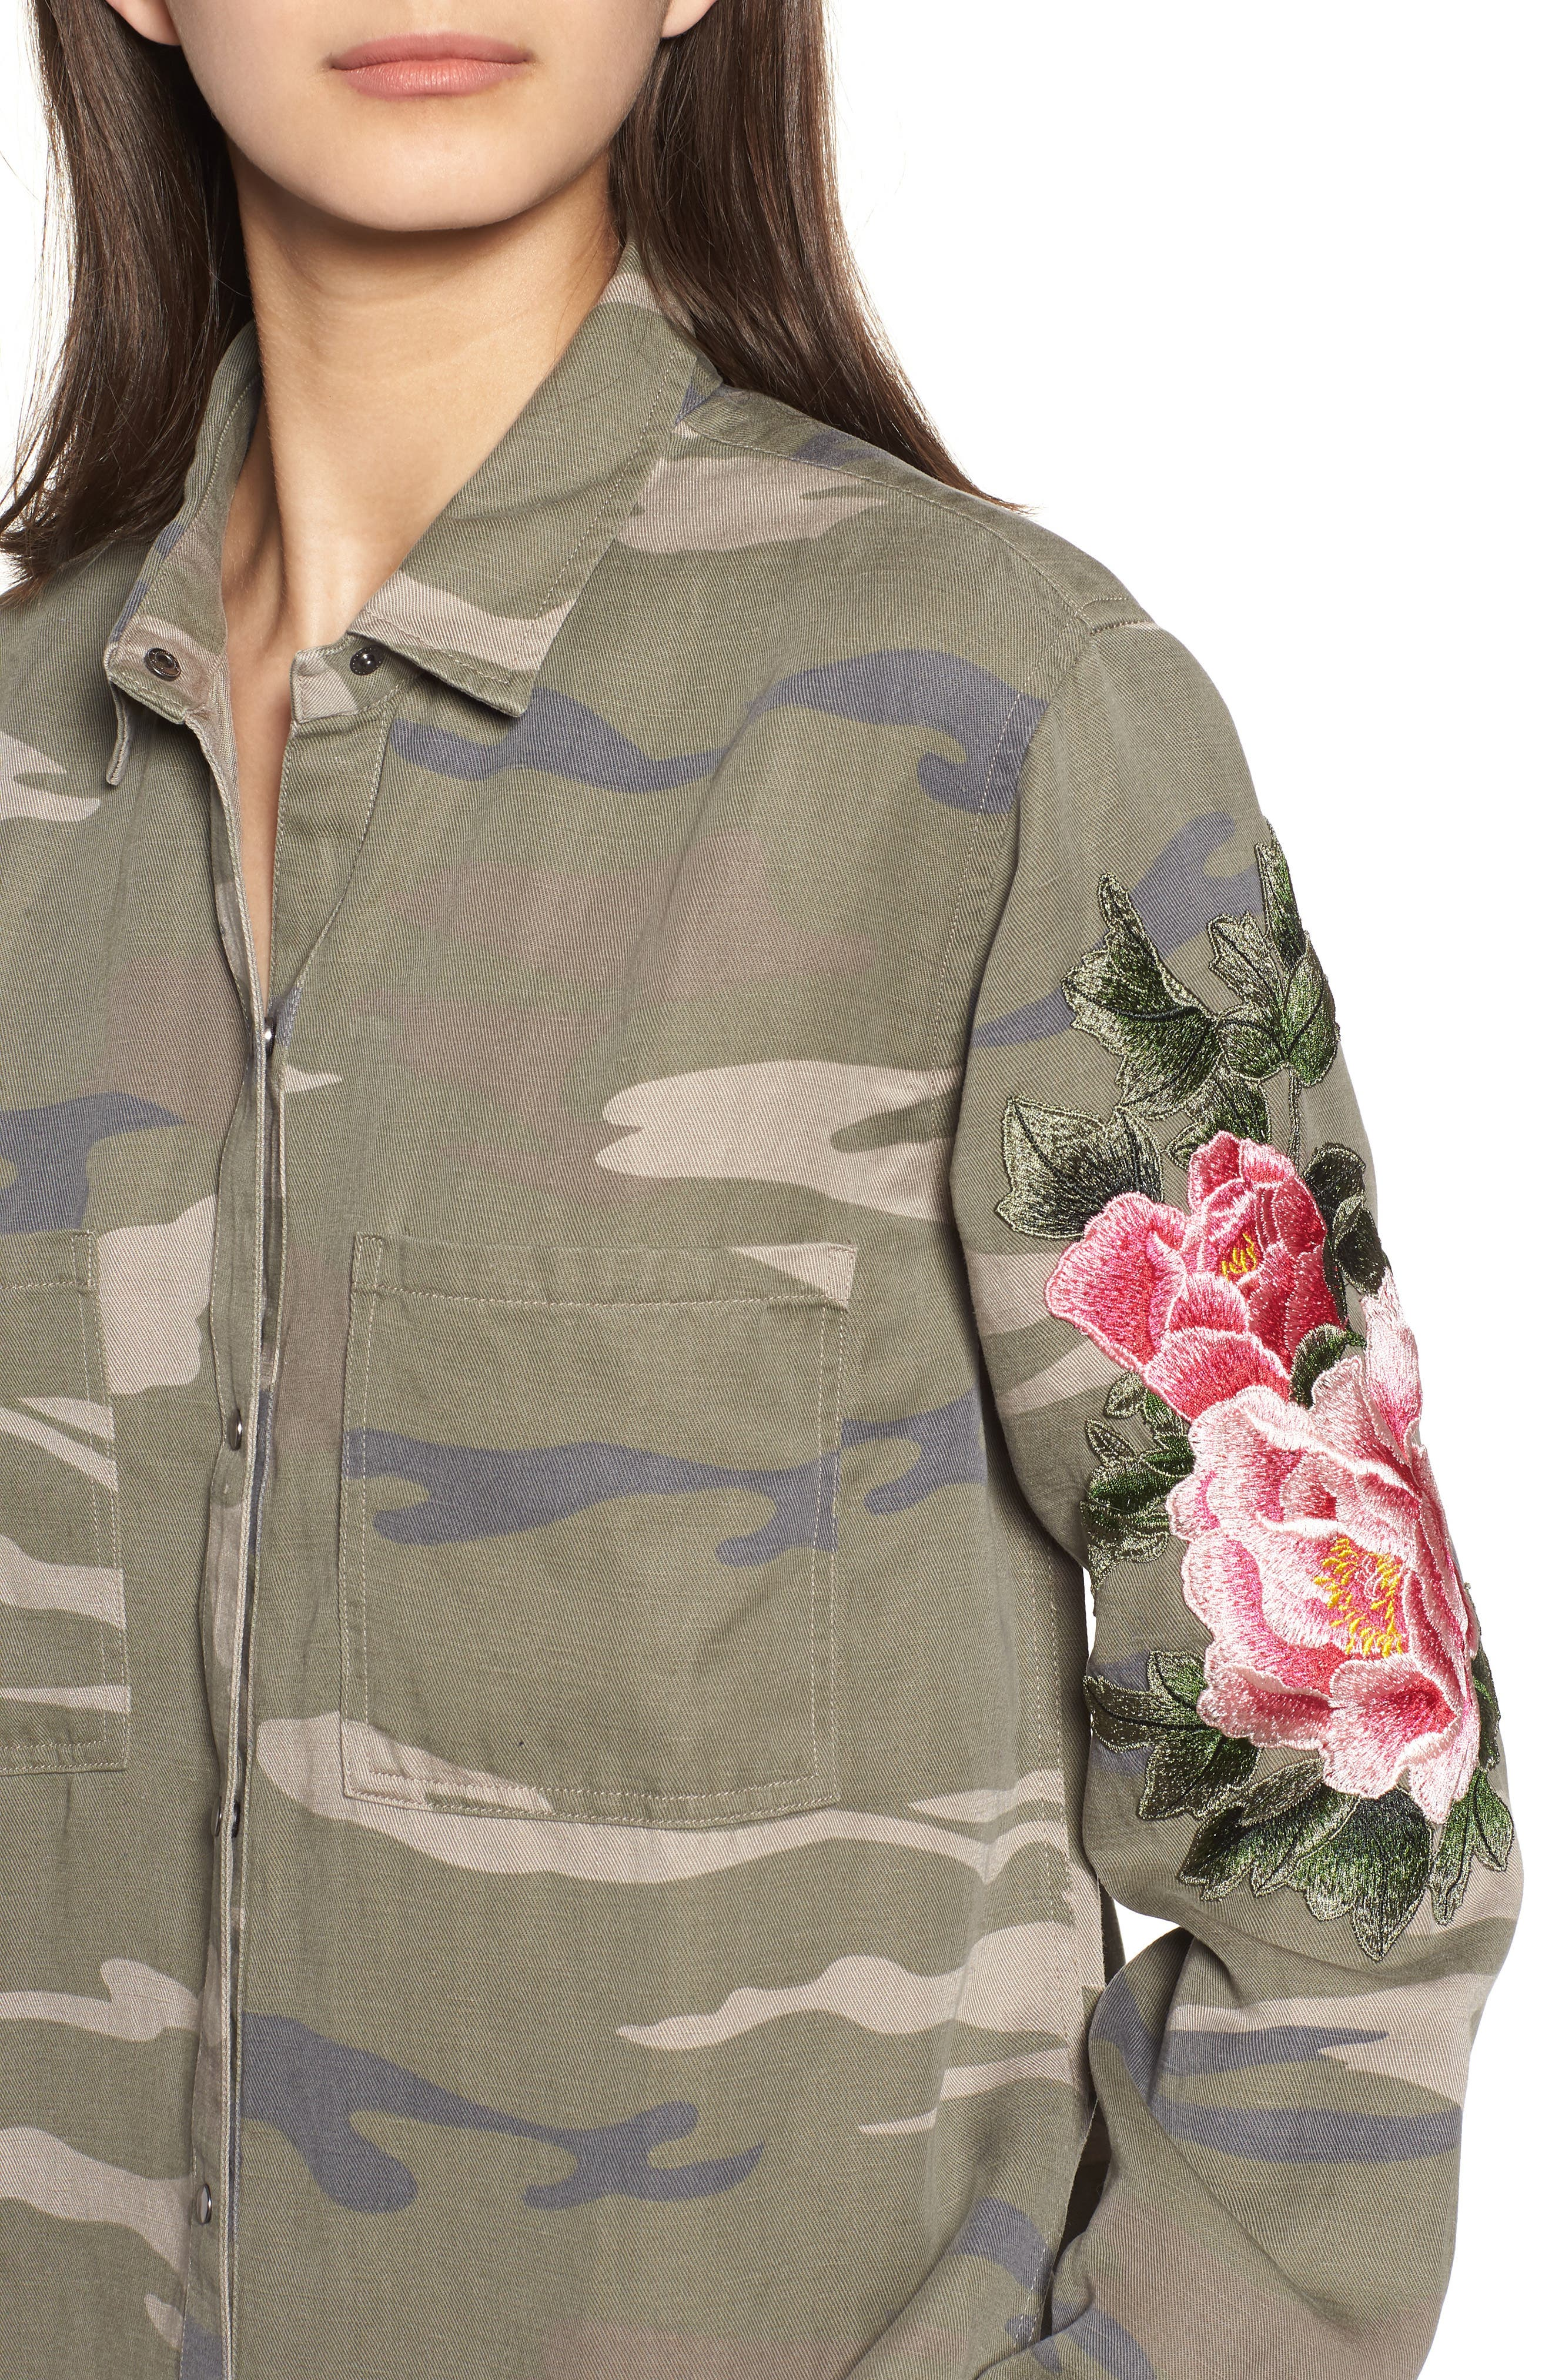 Marcel Embroidered Shirt,                             Alternate thumbnail 4, color,                             Sage Camo With Floral